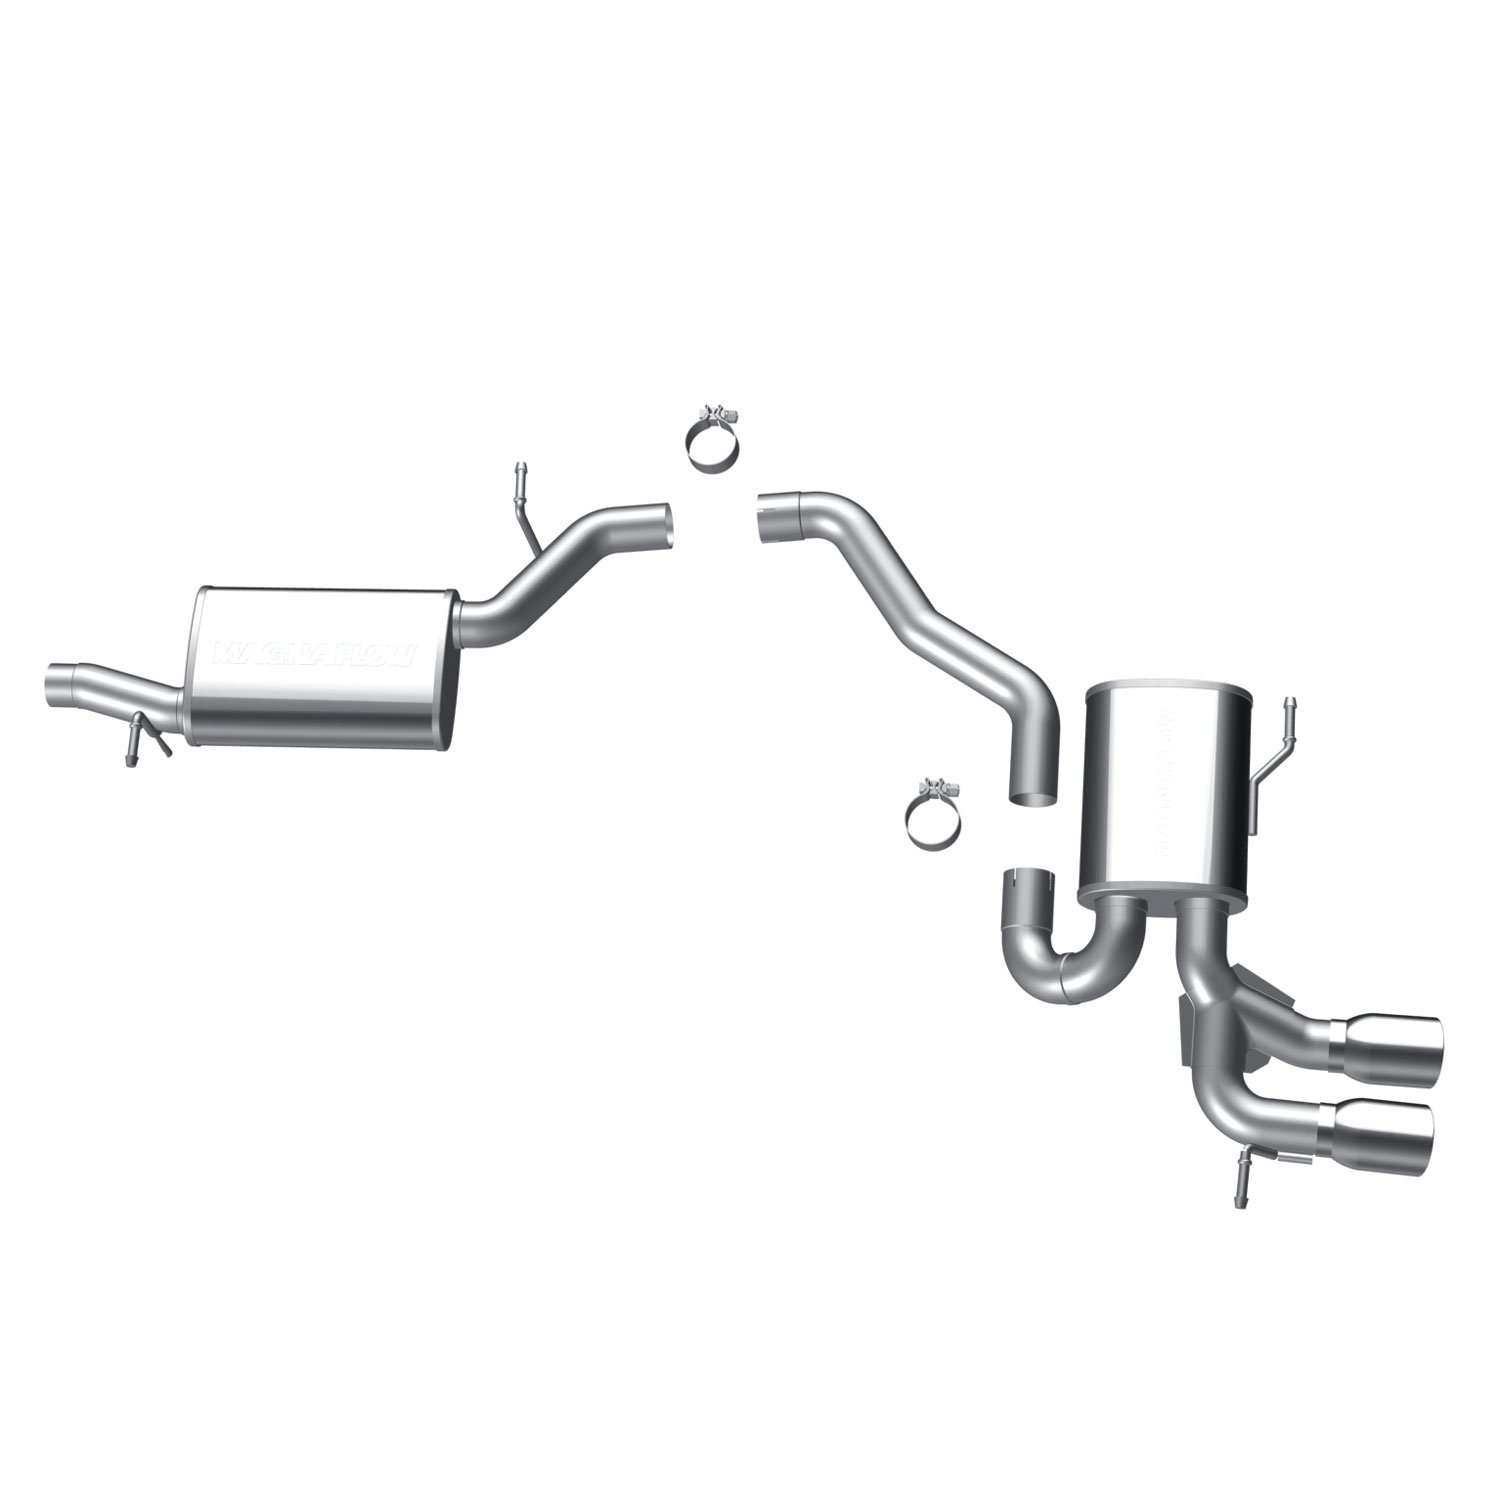 MagnaFlow Touring Exhaust System